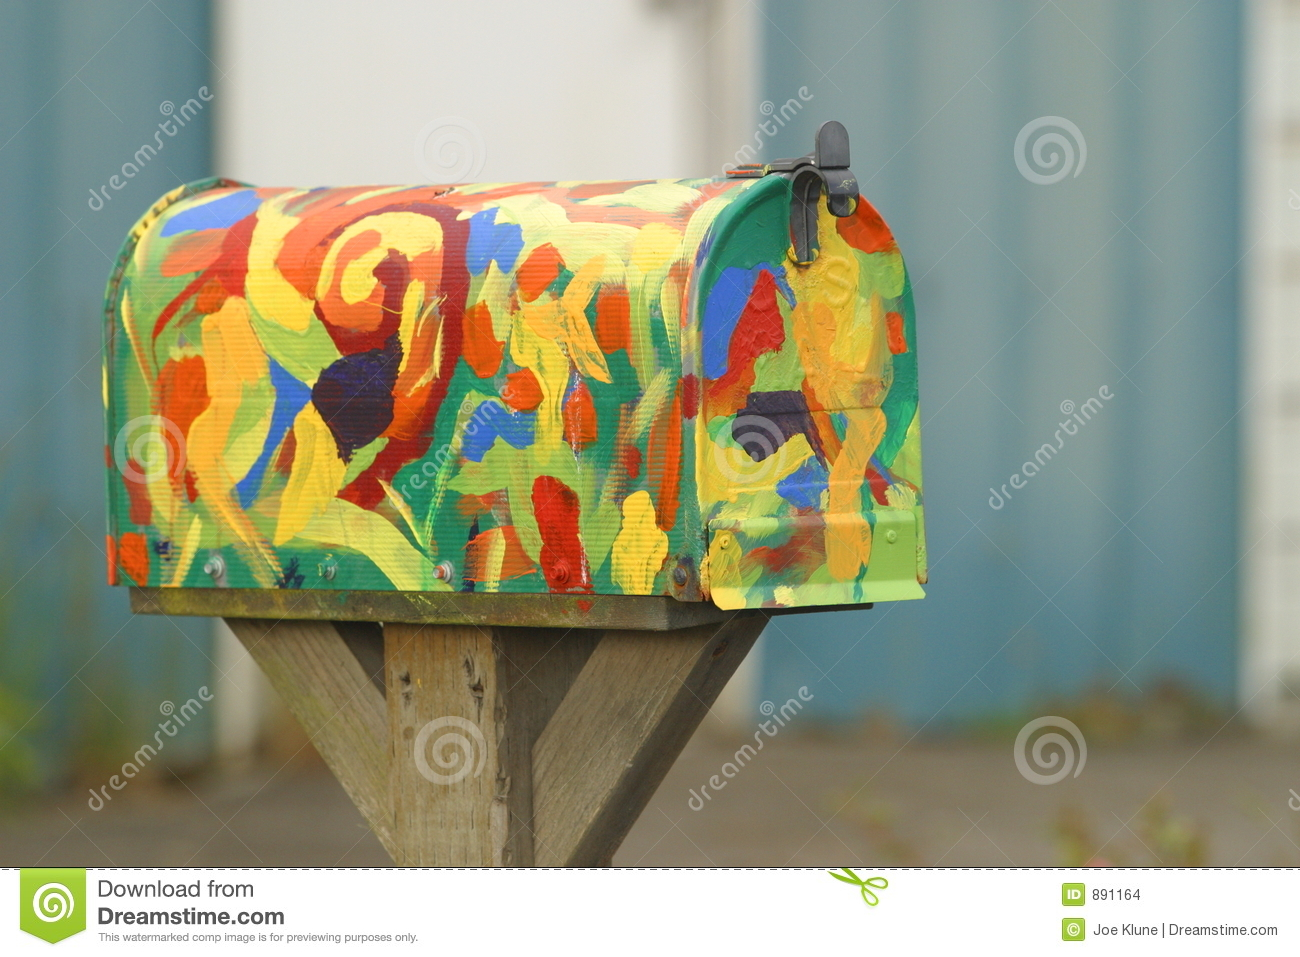 Colorful Mailbox Stock Images - Image: 891164